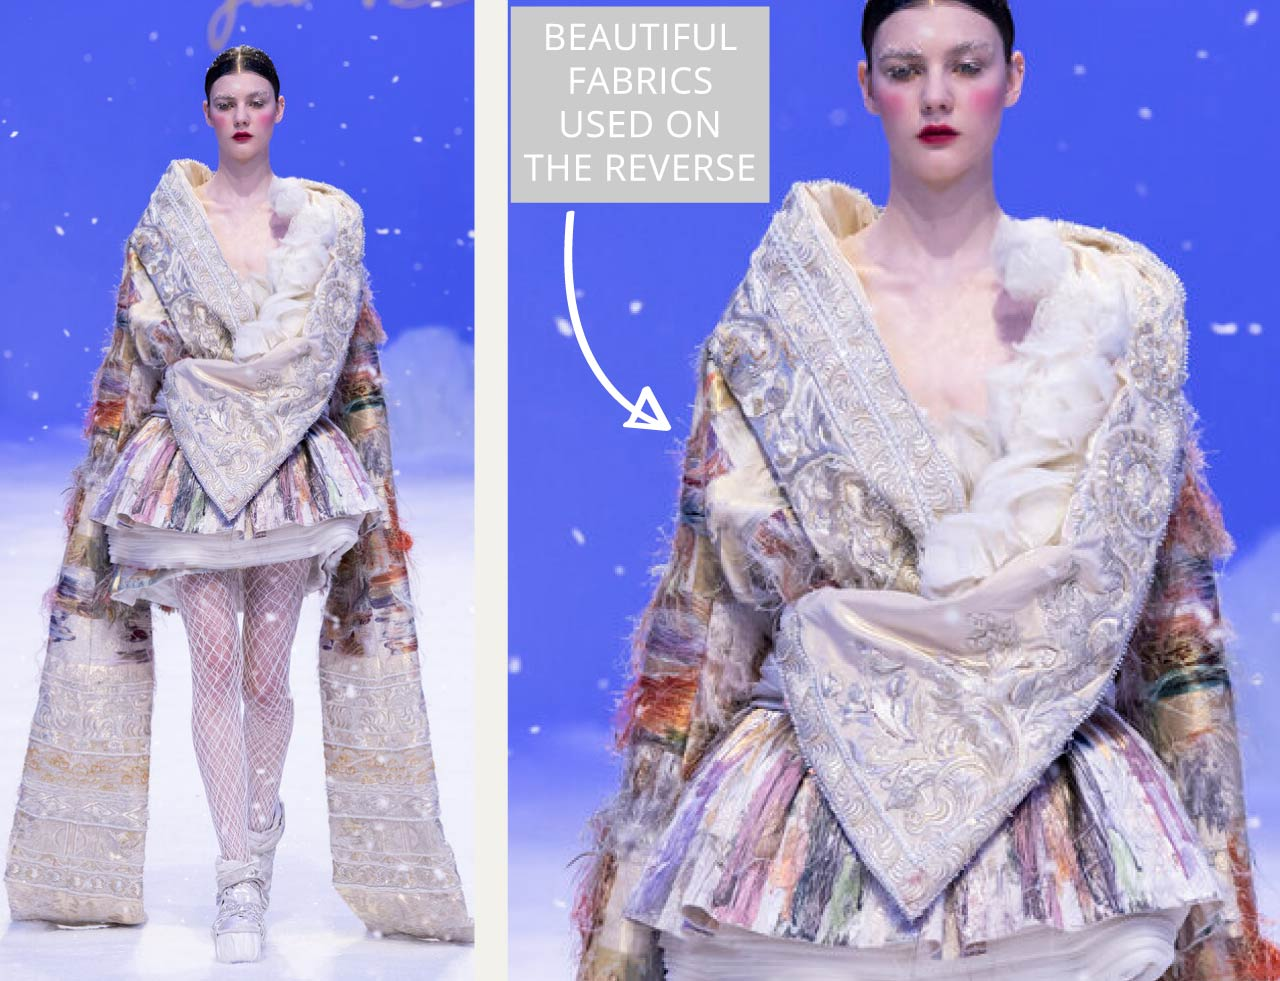 Reverse Textiles at Guo Pei Haute Couture | The Cutting Class. Beautiful antique fabrics used on the reverse to reveal brocade 'floats'.